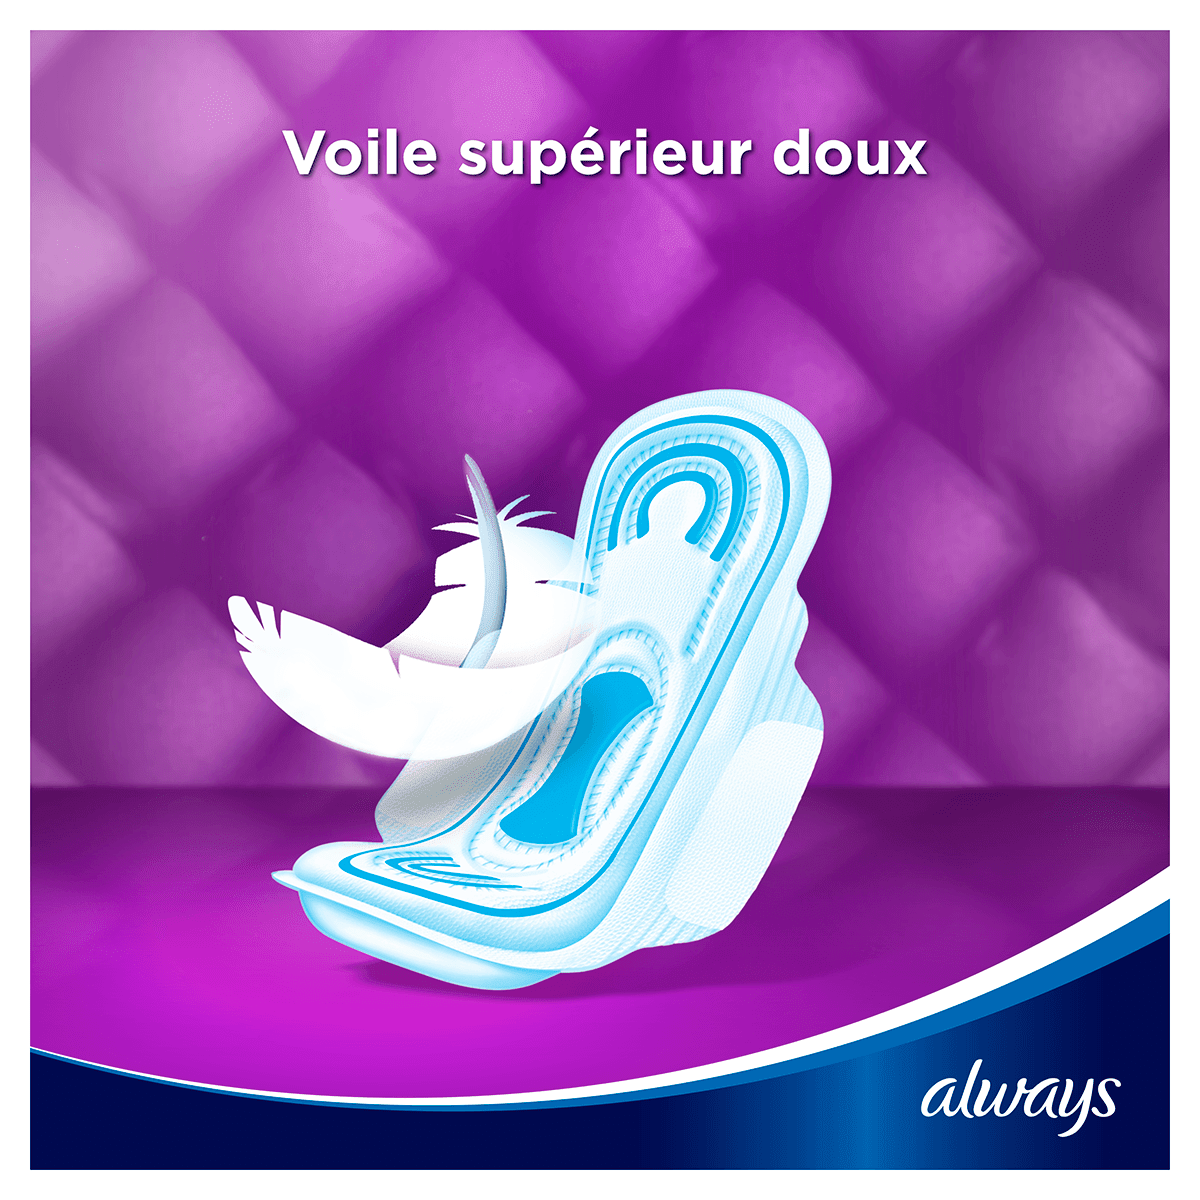 ALWAYS Maxi Long Serviettes Hygieniques Cycle Menstruel 7